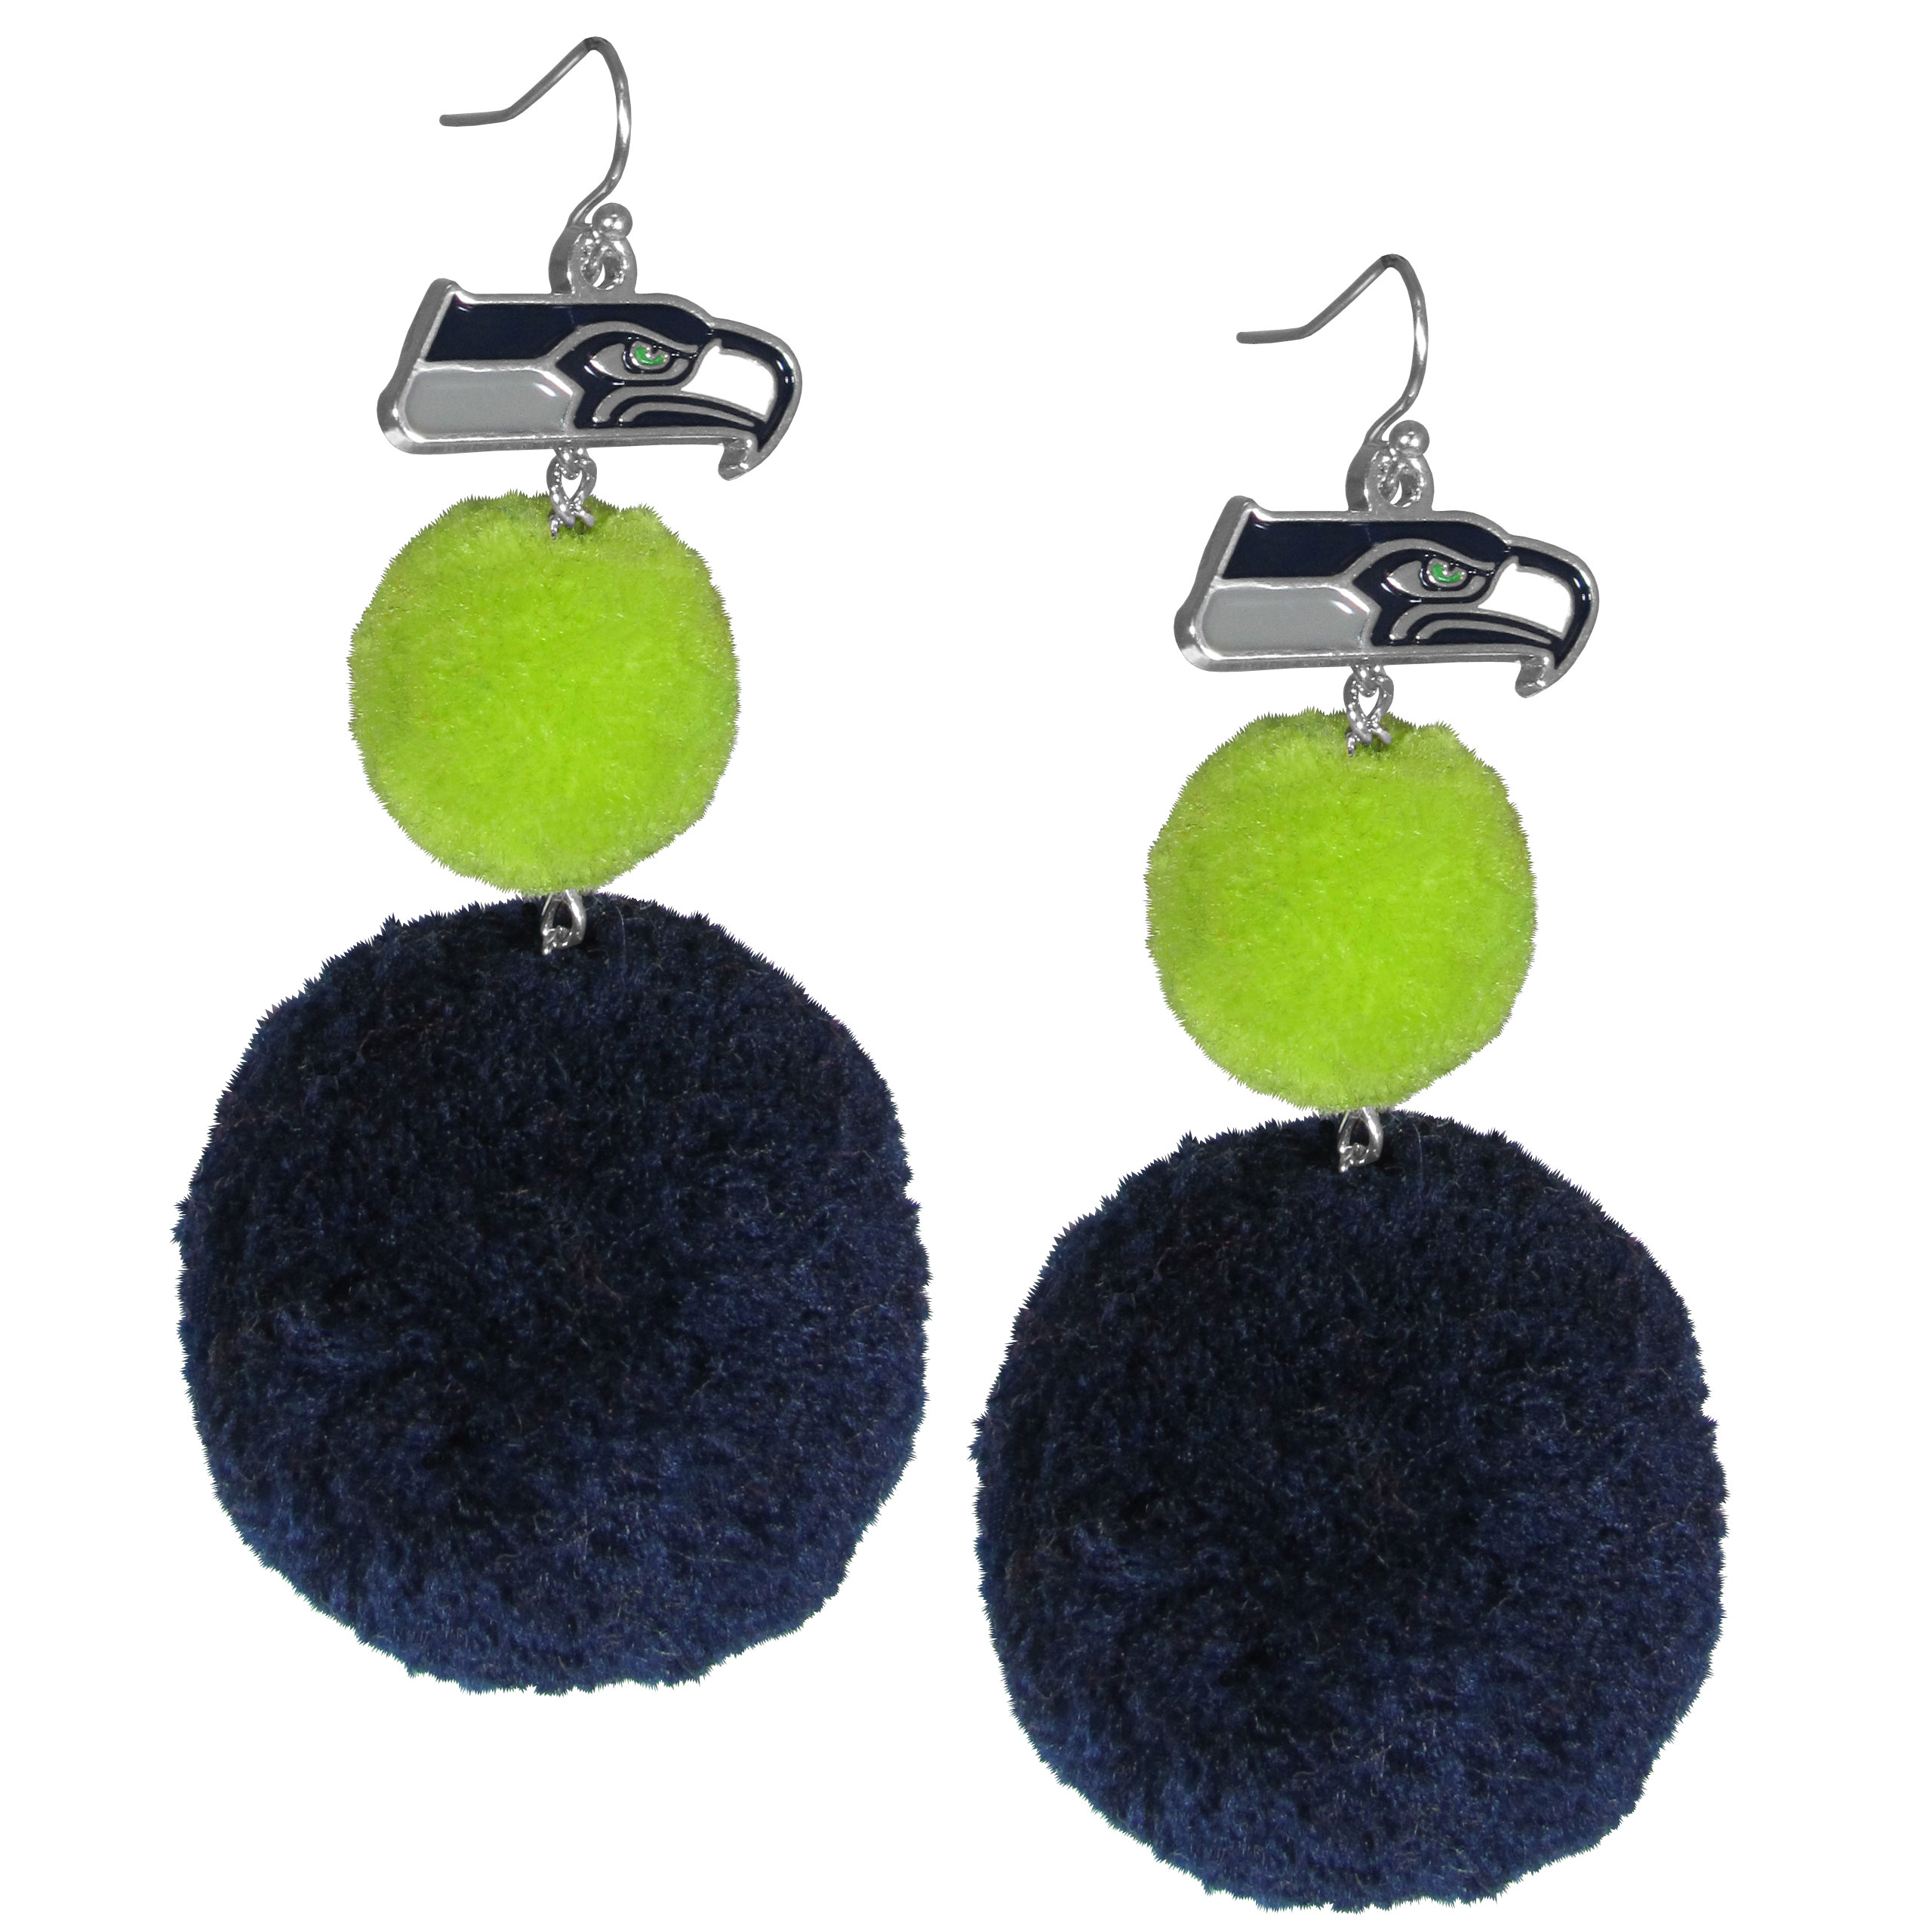 Seattle Seahawks Pom Pom Earrings - These fun and bold earrings are a game day must! The earrings feature a metal Seattle Seahawks charm with enameled color details that hangs above to colorful pom pom charms. The largest pom is 1.5 inches round for, the earrings hang at 3.5 inches long. The fishhook posts are nickel free and hypoallergenic.